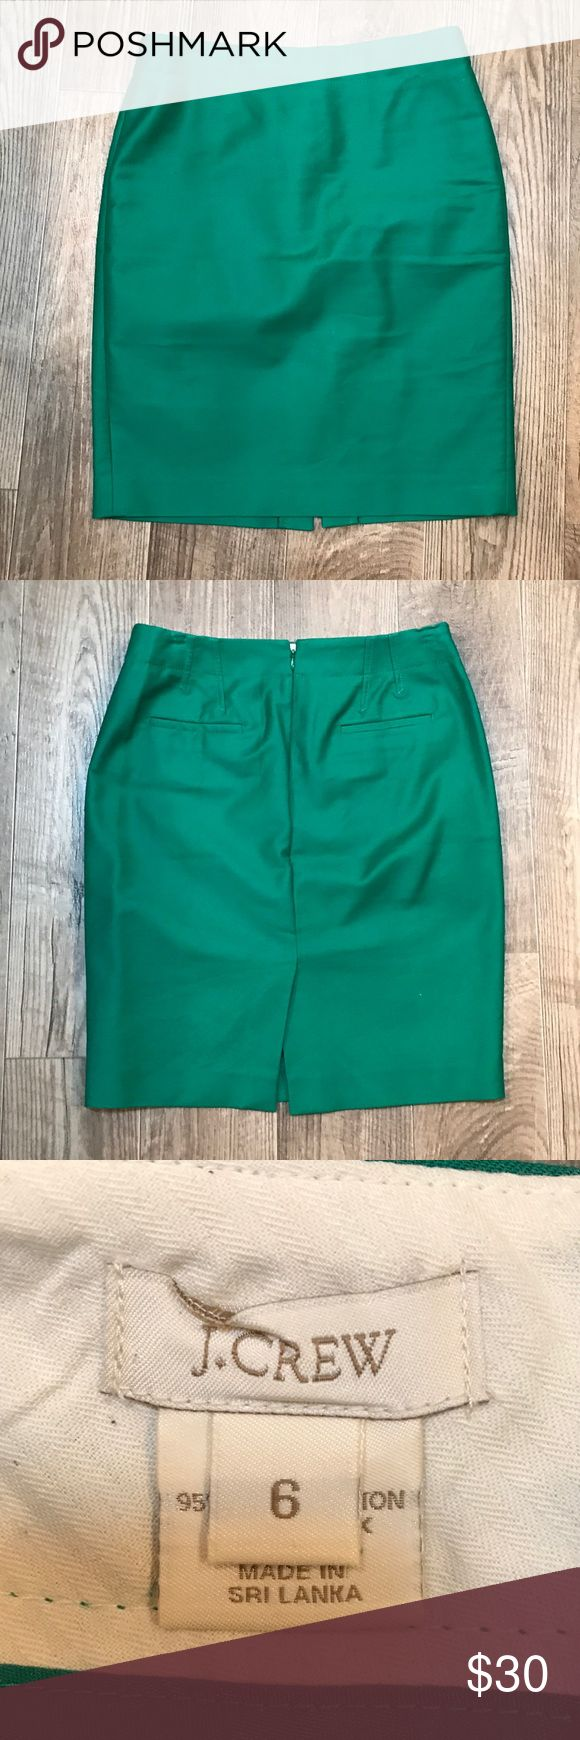 Size 6 J. Crew Green Pencil Skirt. Like new. Size 6 J. Crew Green Pencil Skirt. Like new. J. Crew Skirts Pencil